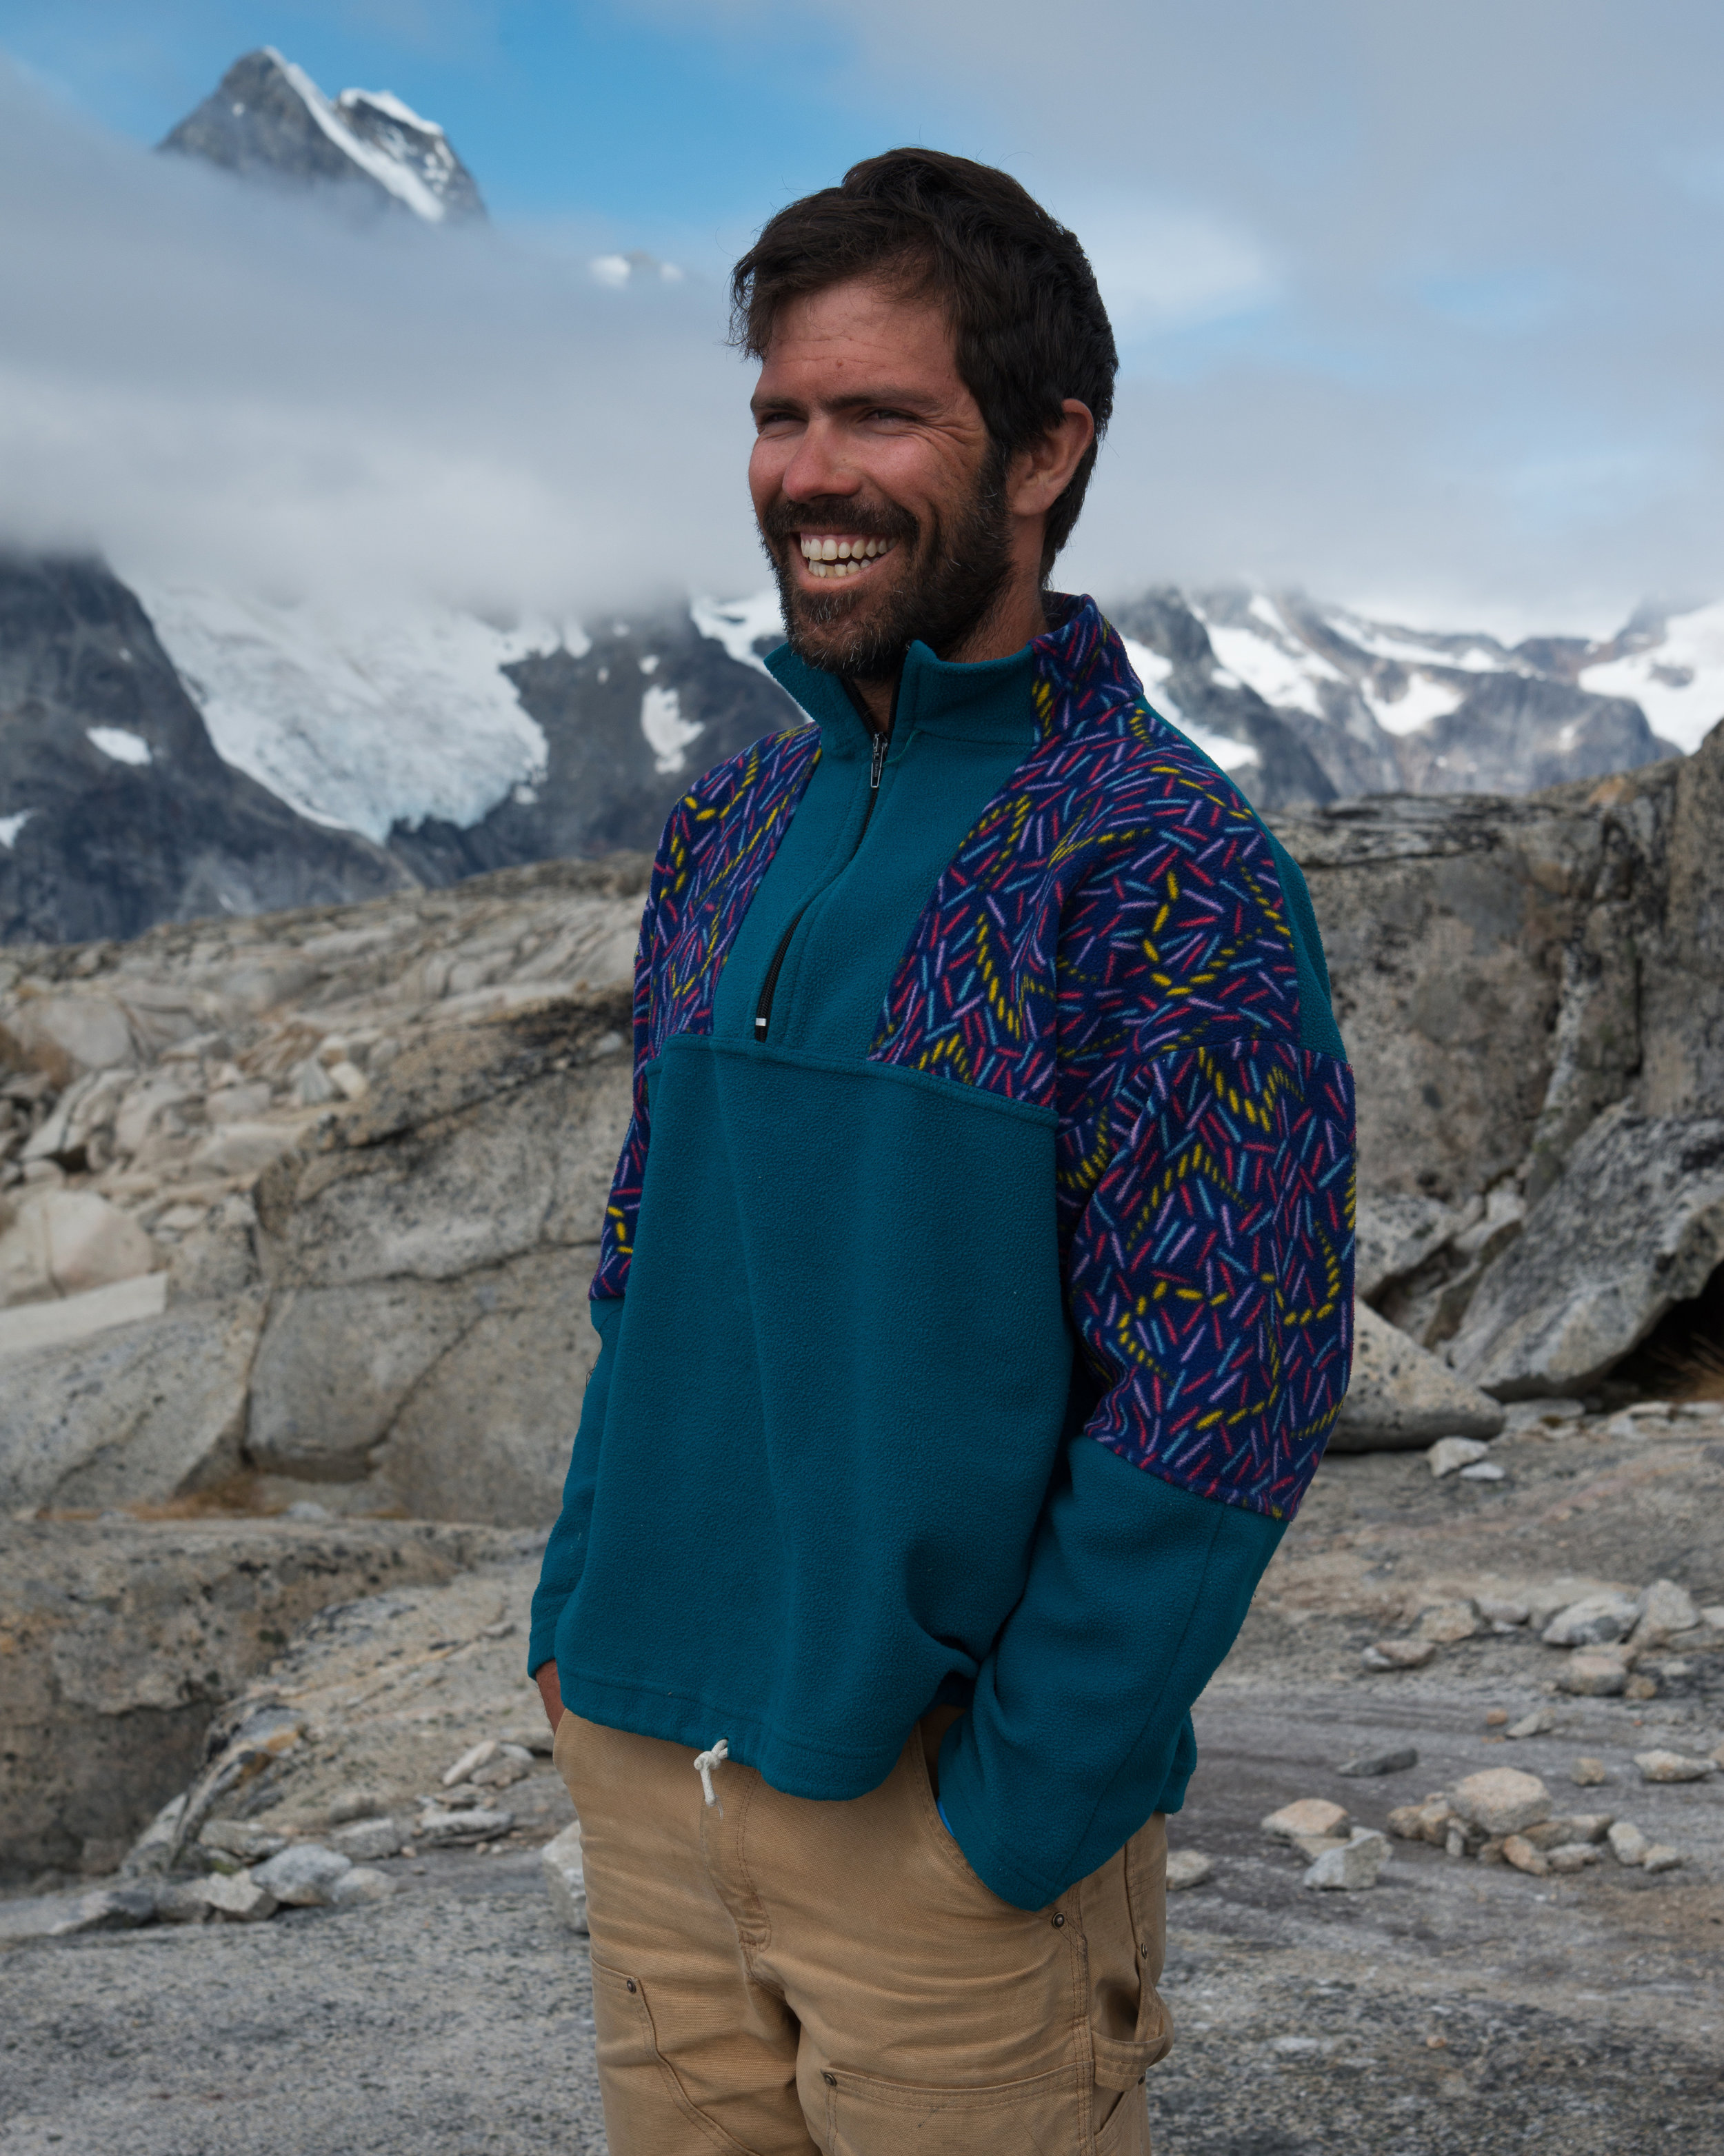 Brad trivia: In his many years at JIRP, Brad has never once woken up in a bad mood on the Icefield.